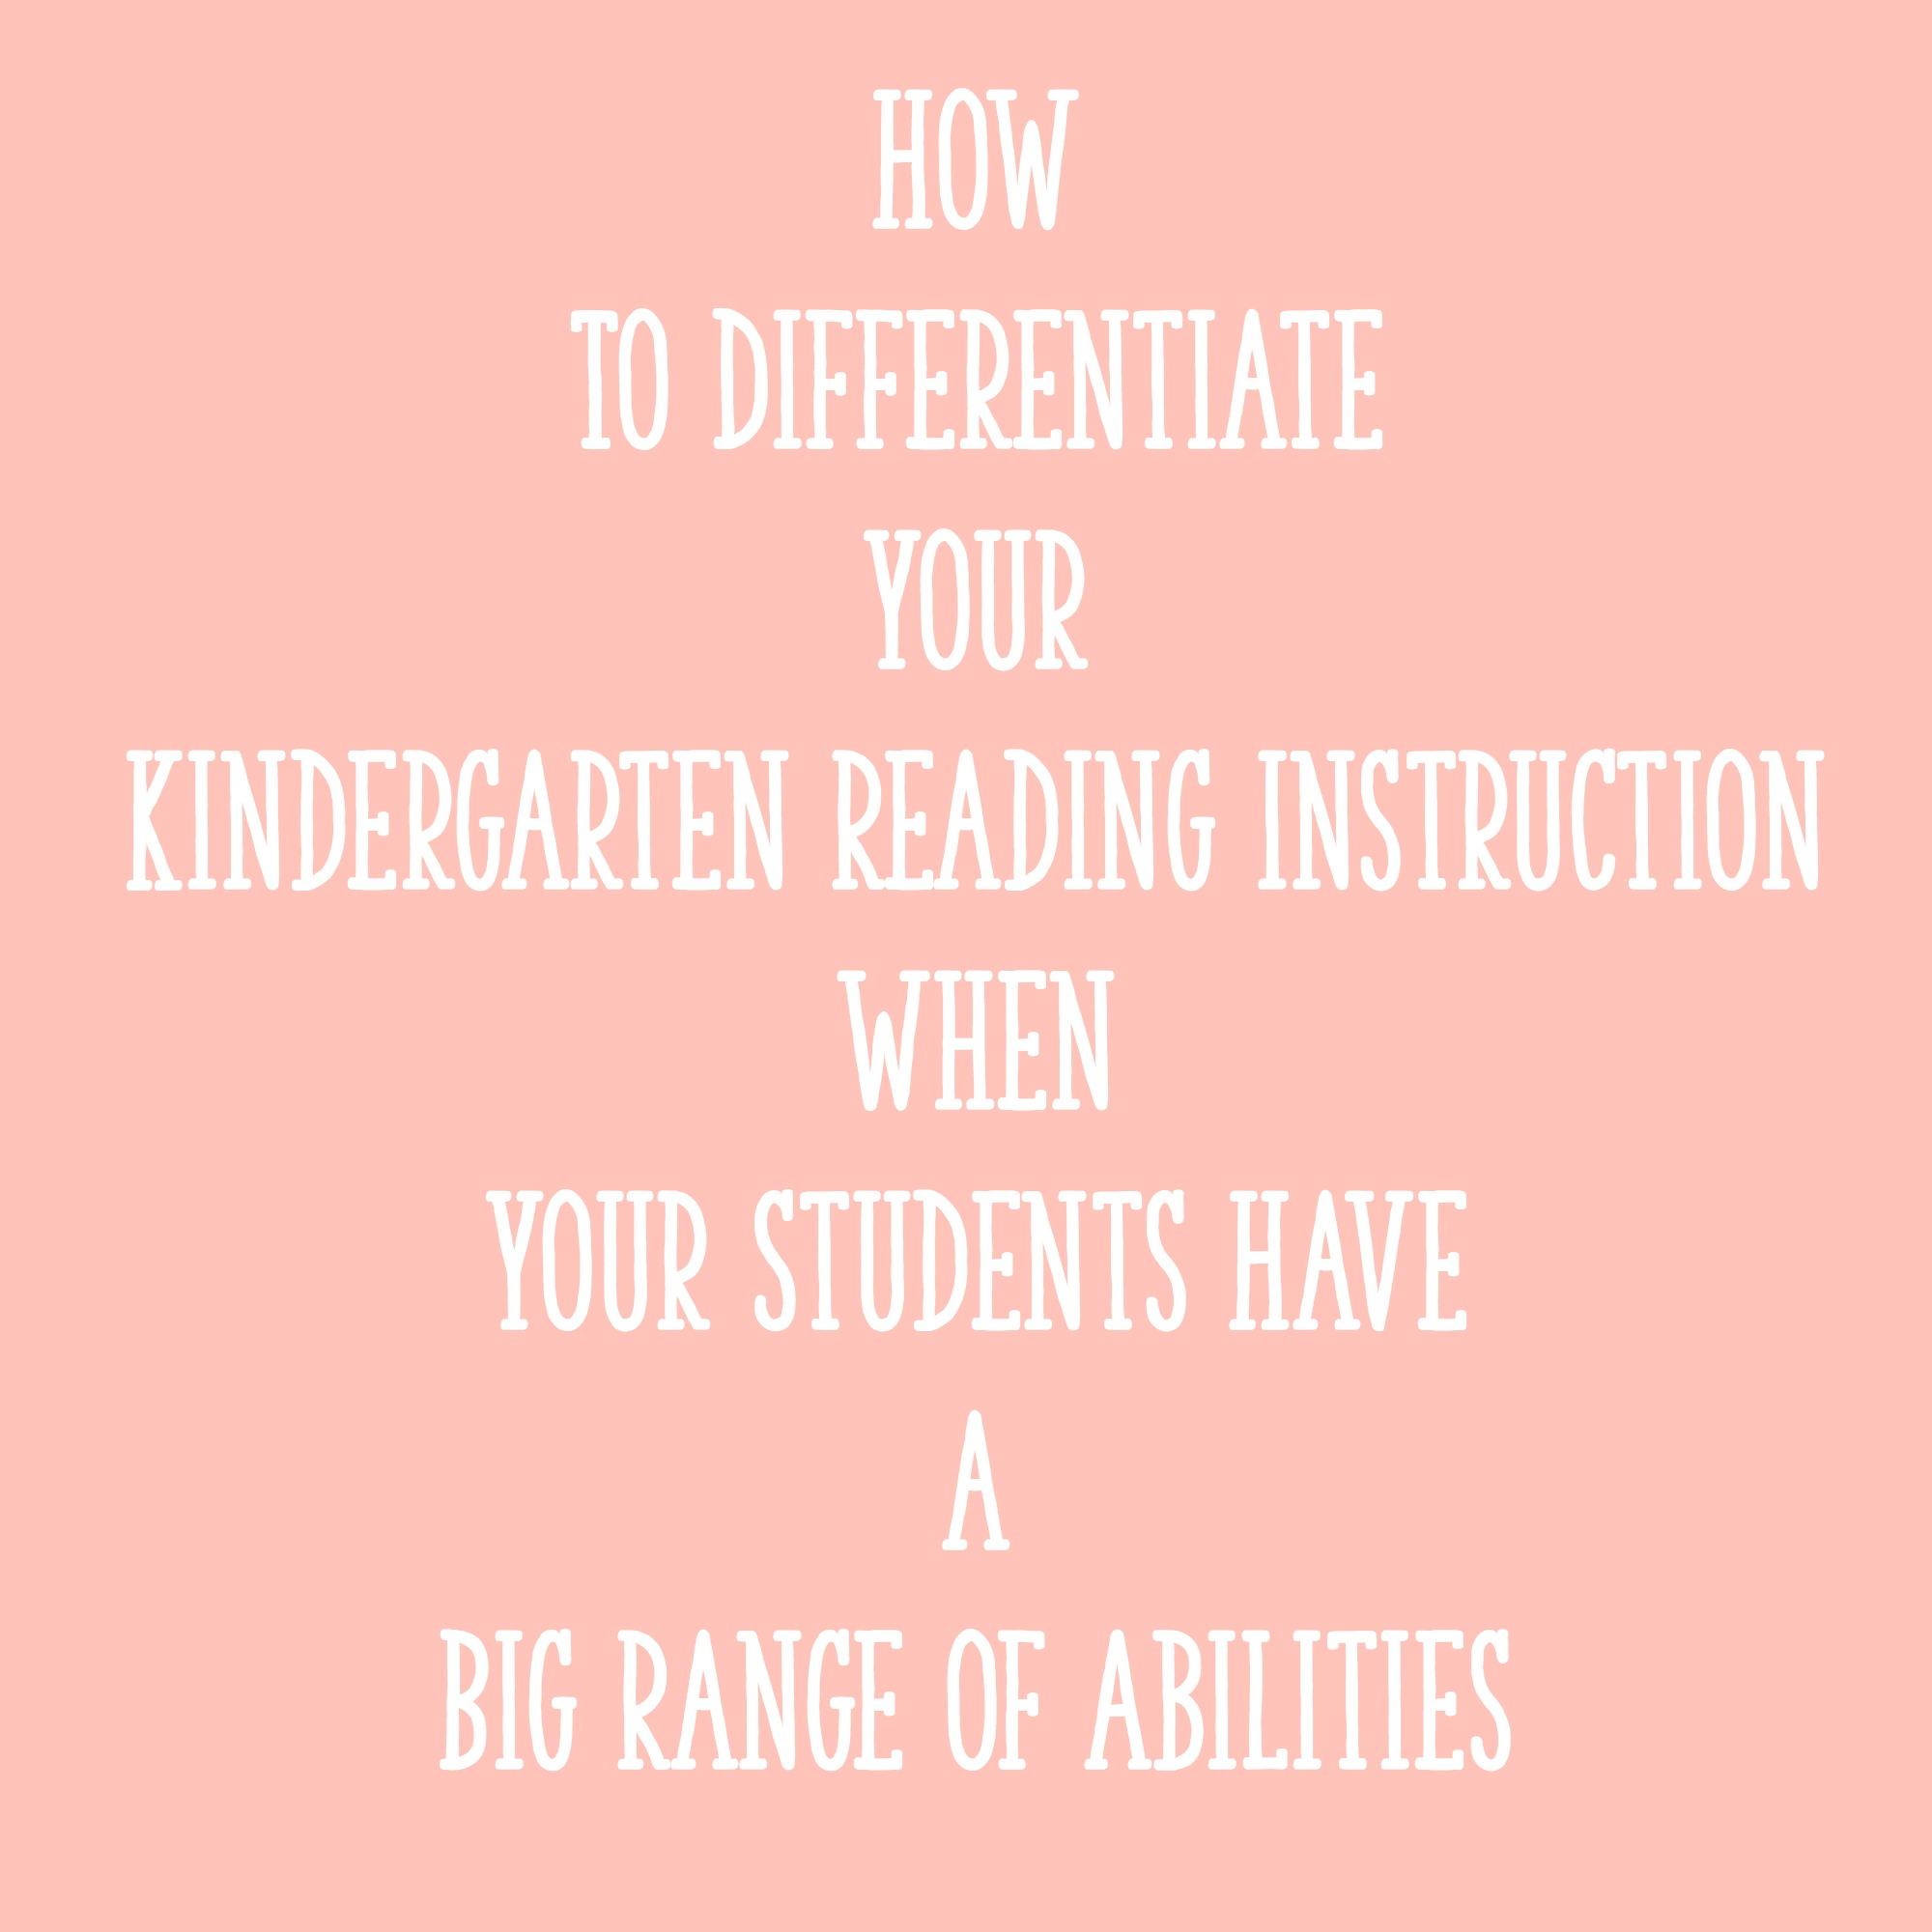 How To Differentiate Your Kindergarten Reading Instruction When Your